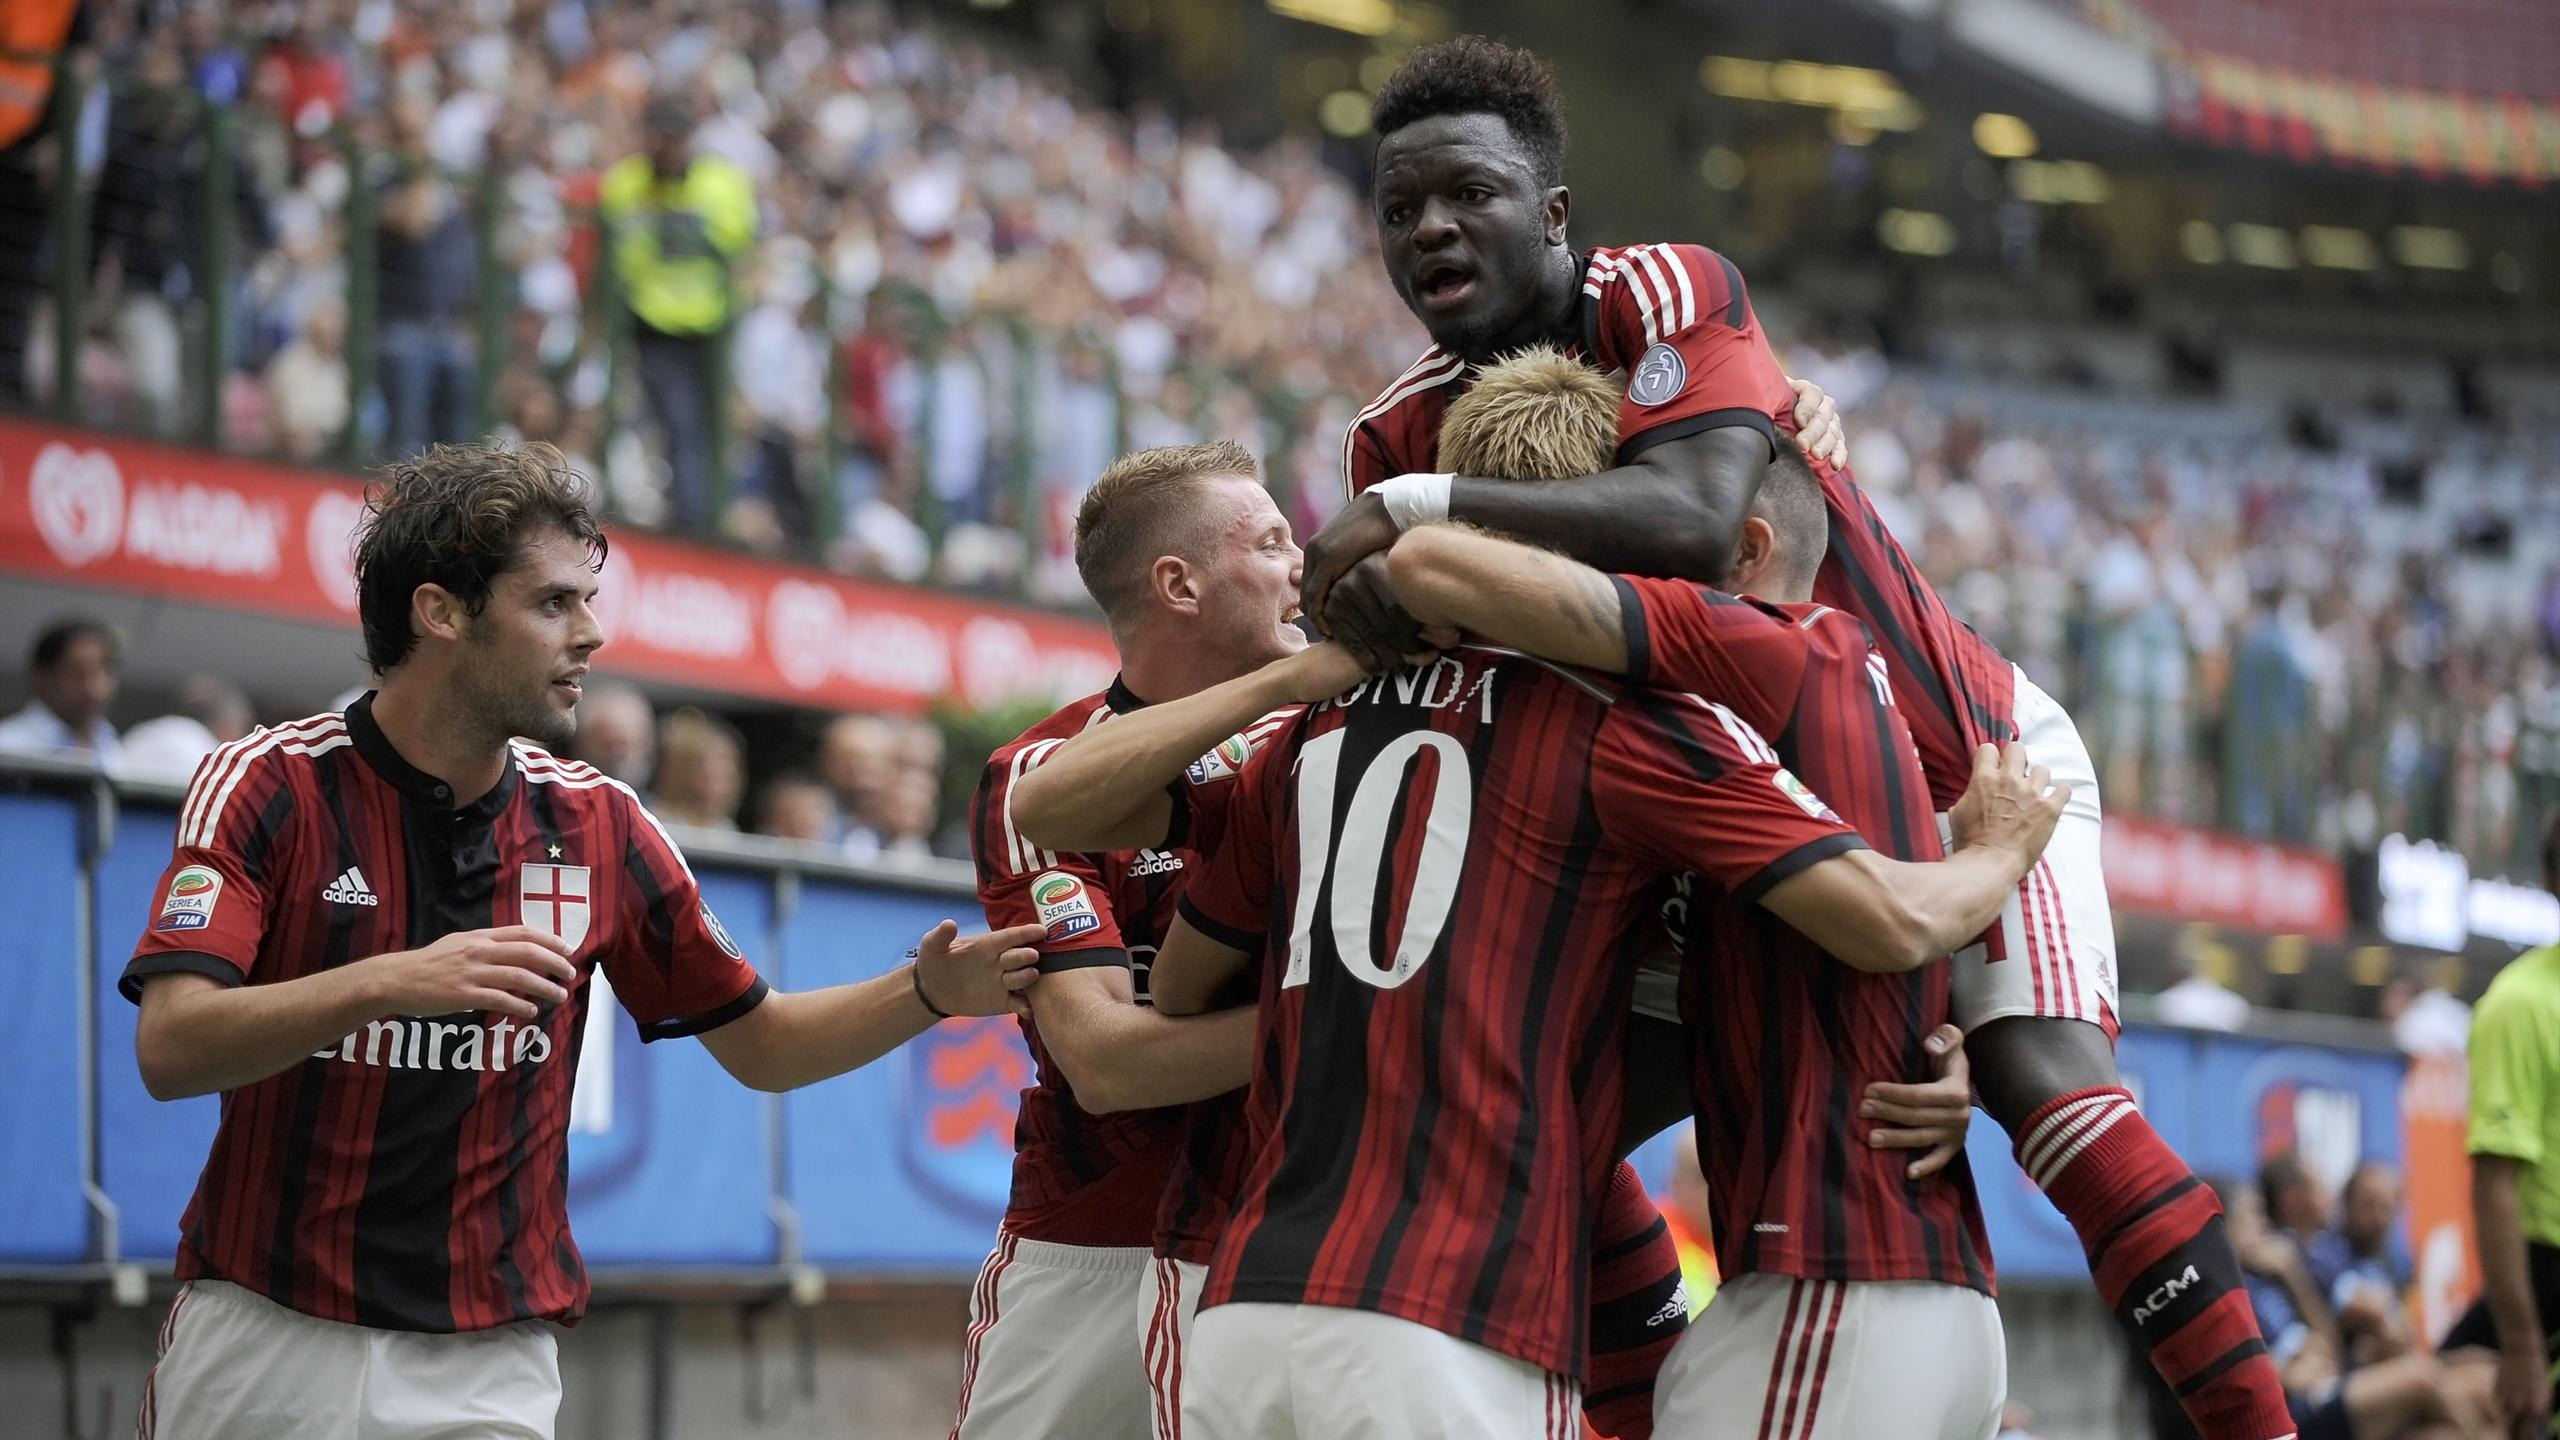 Video: AC Milan vs Lazio